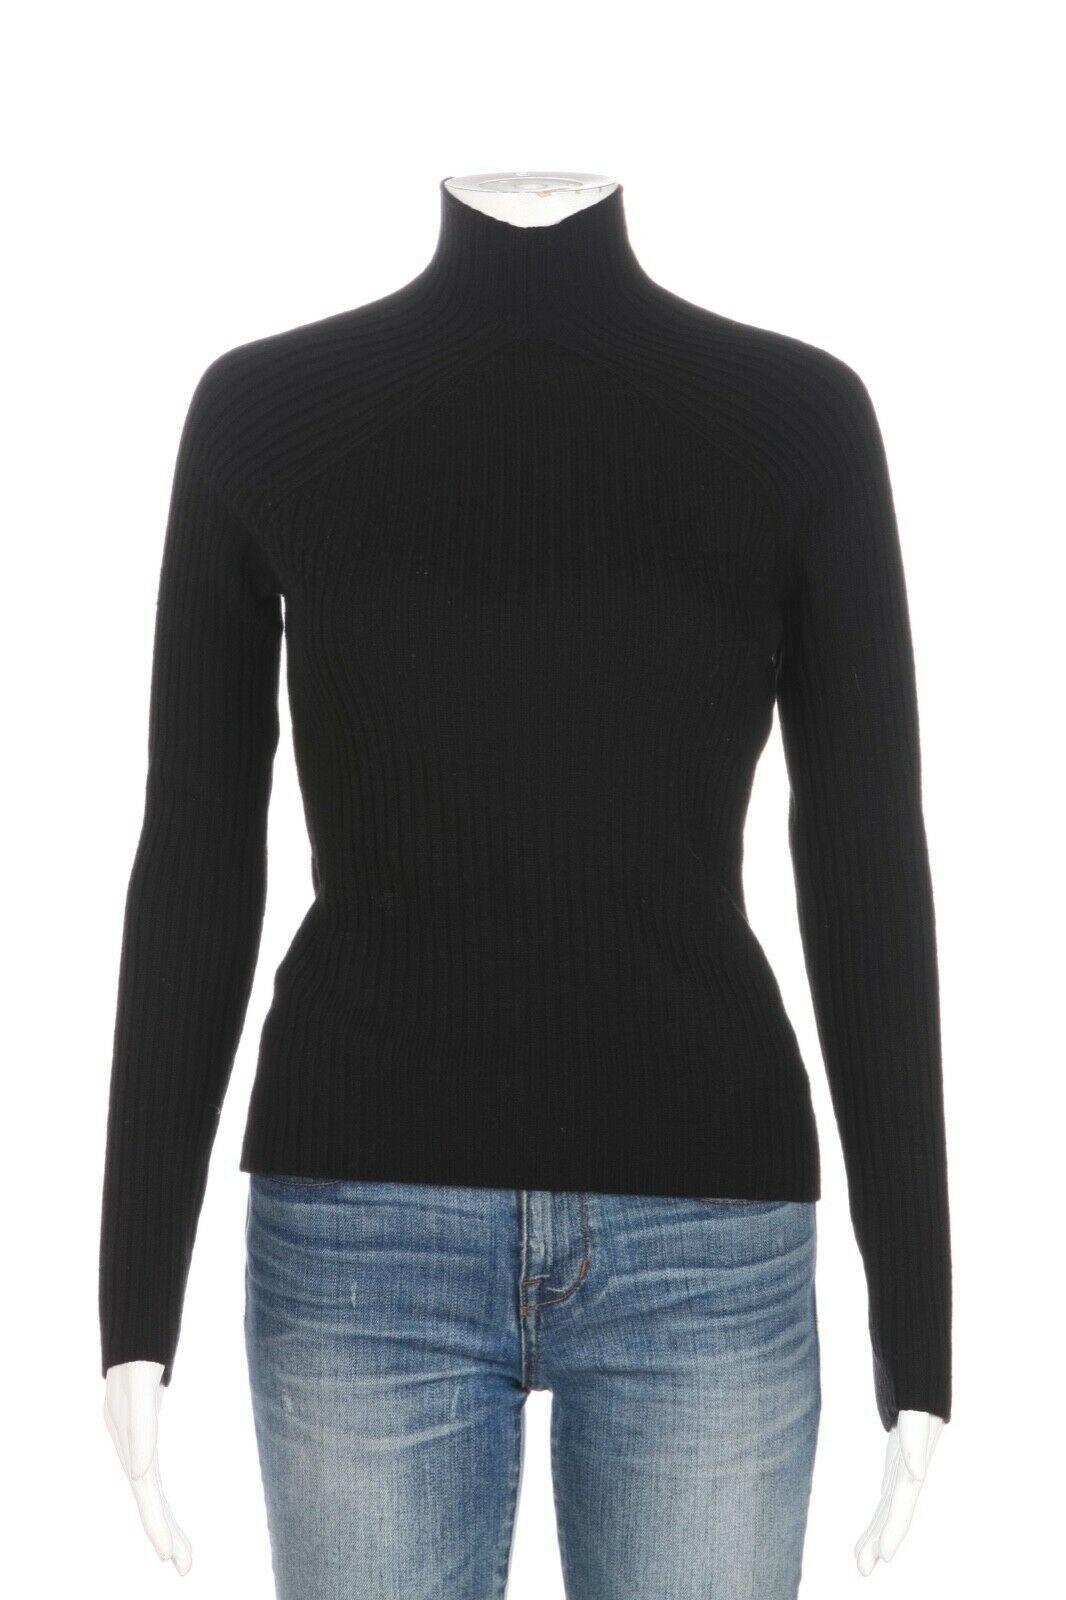 ELIE TAHARI Ribbed Mock Neck Sweater Size S